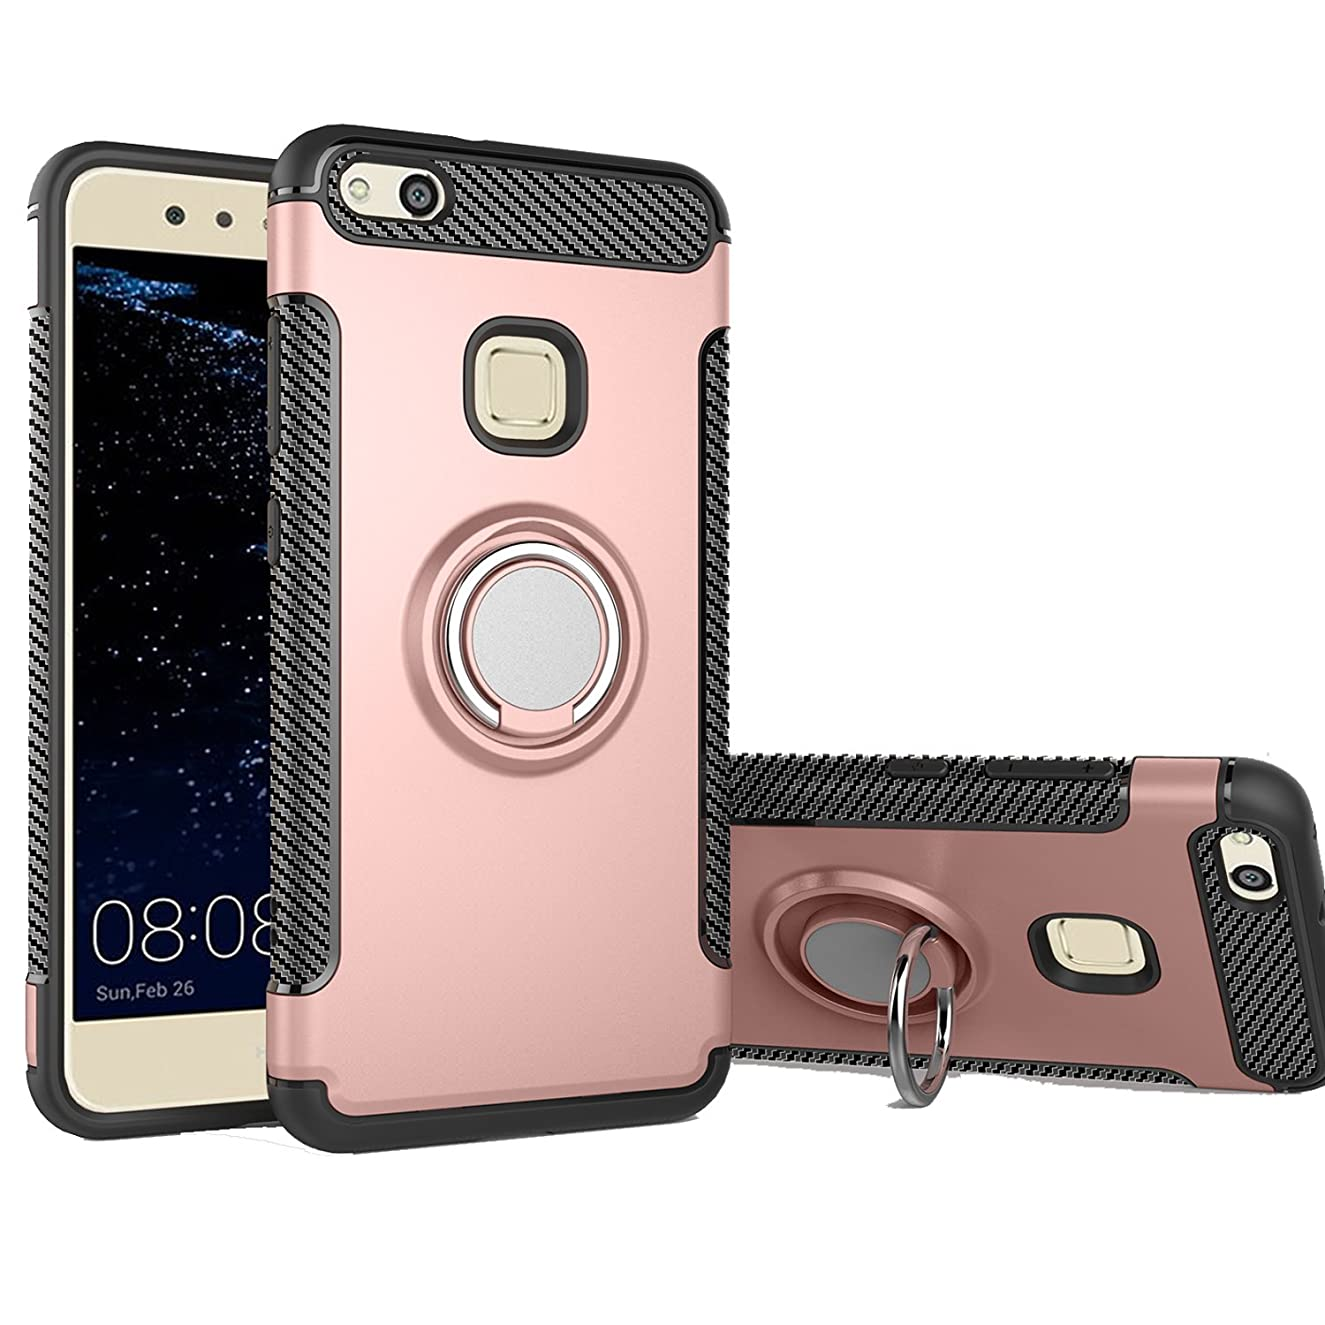 Huawei P10 Lite Case, Ranyi [2 Piece Ring Cover] [Adsorbed iron Plate] [360 Rotating Metal Ring] Hybrid Dual Layer 360 Full Body Protective 2 In 1 Case for Huawei P10 Lite 5.2 inch (2017), rose gold